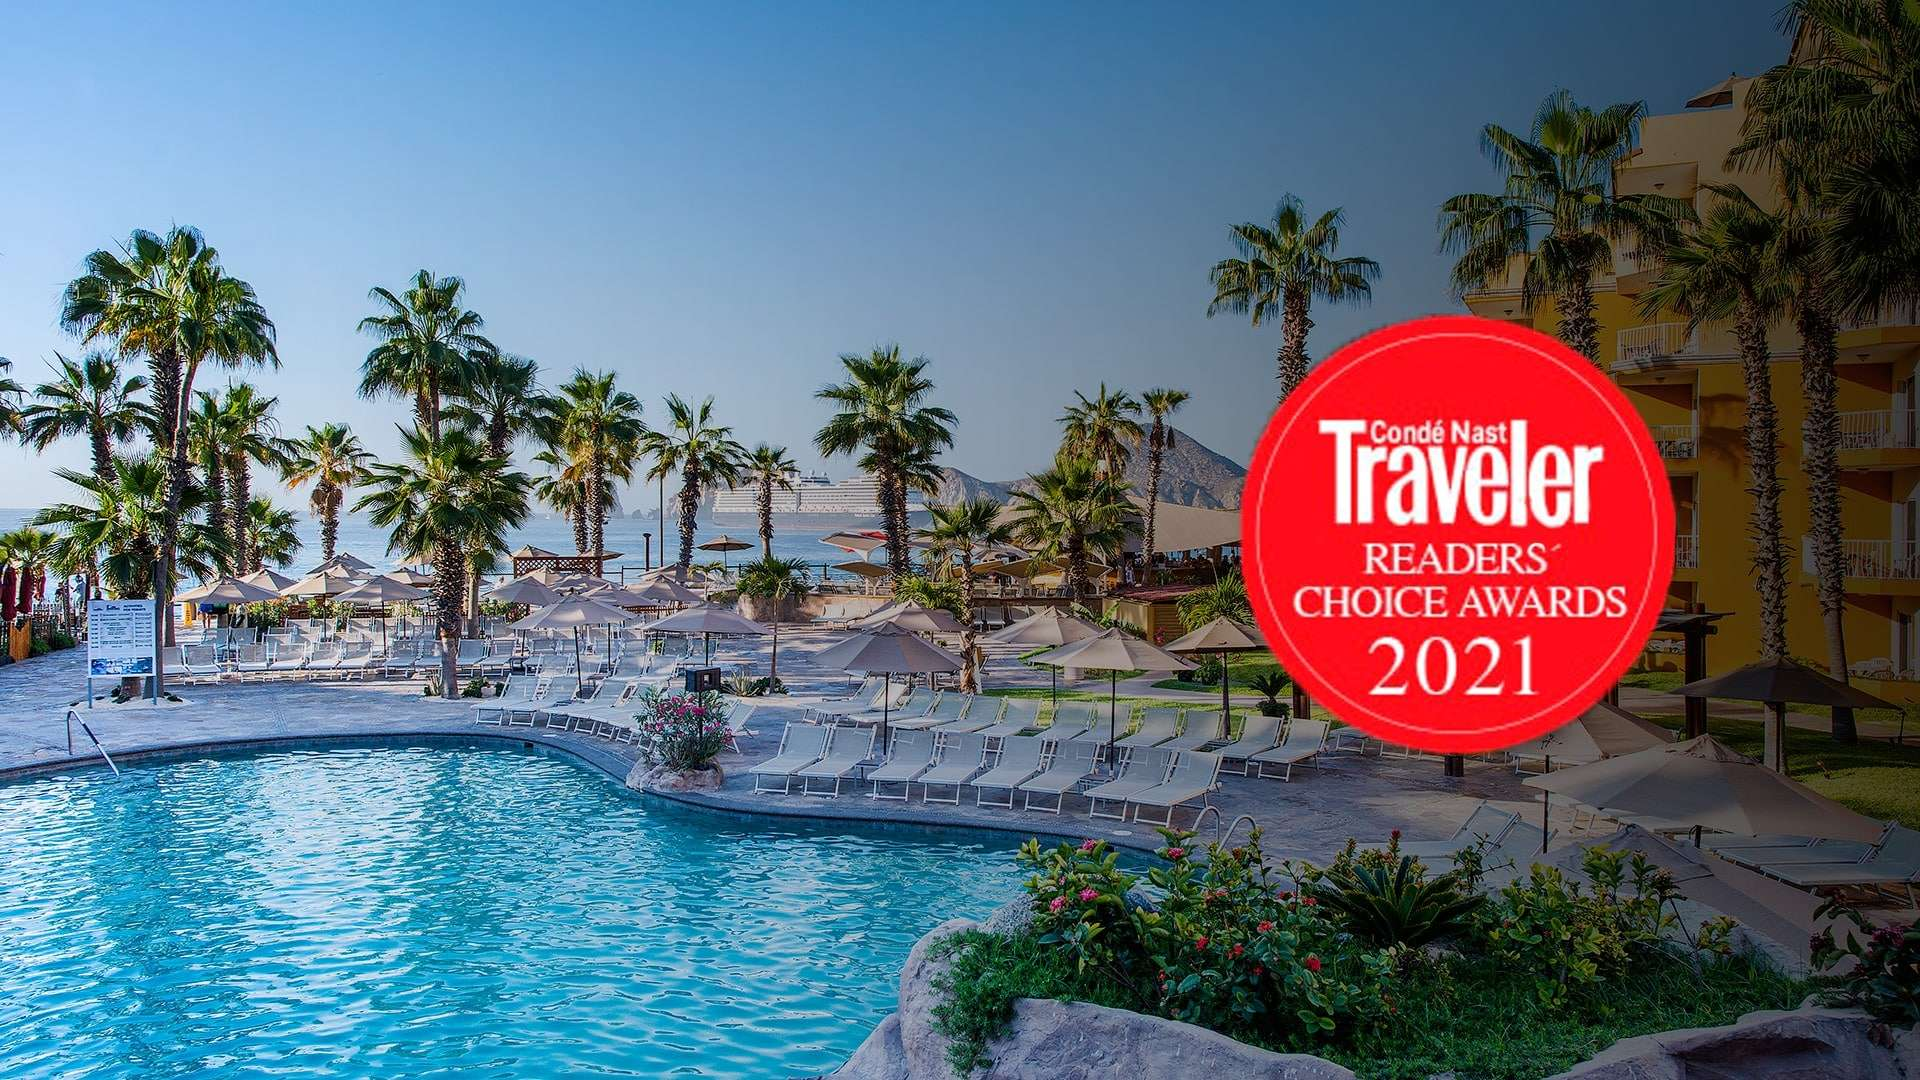 Villa Del Palmar Cabo San Lucas Among The Top Resorts In Western Mexico According To The Conde Nast Ranking